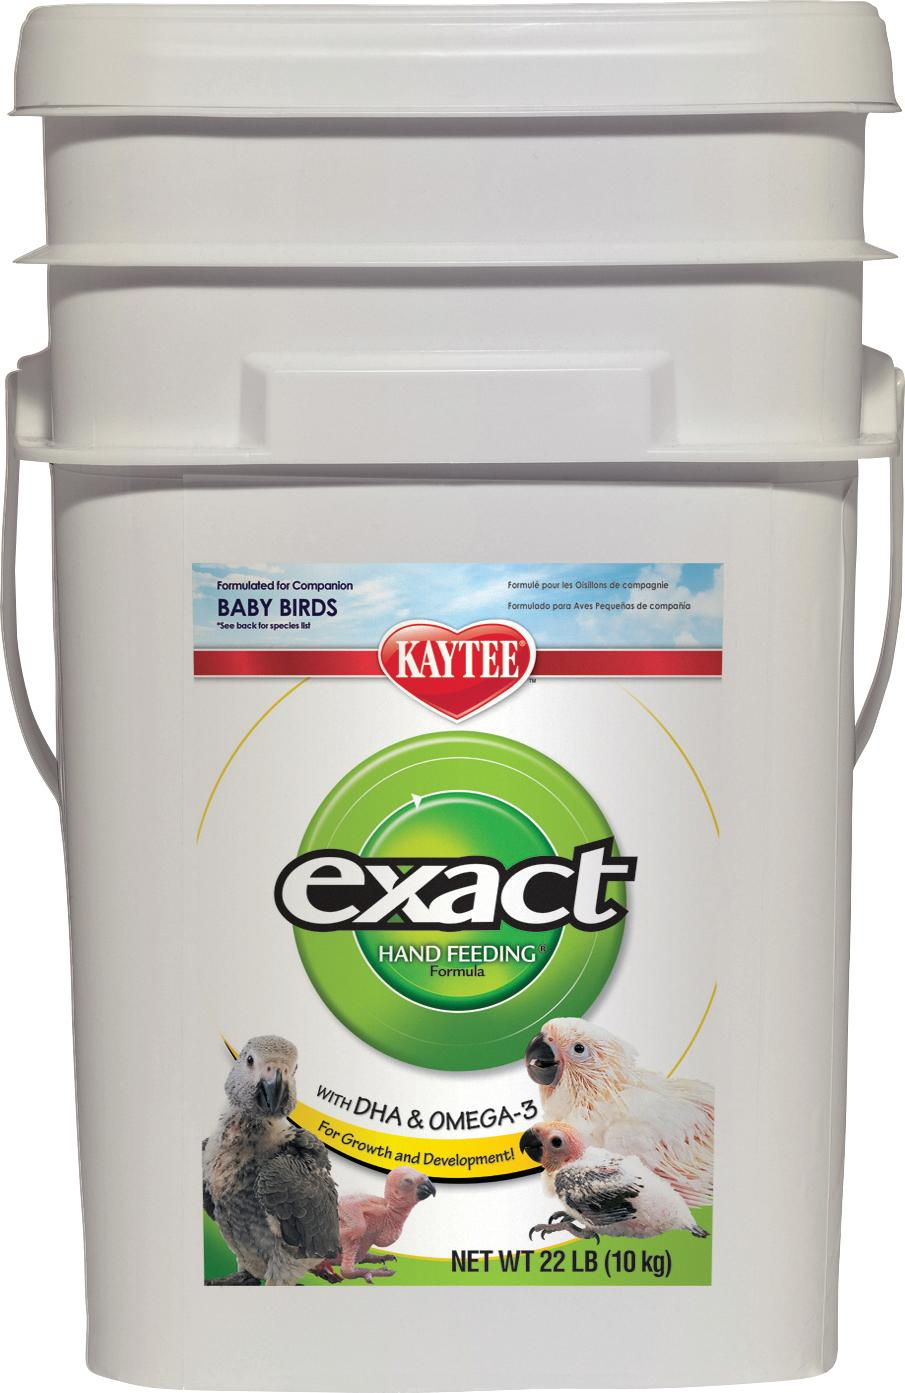 Kaytee Products 100032336 Exact Hand Feeding Formula Bird Food, 22 lb by Kaytee Products Inc